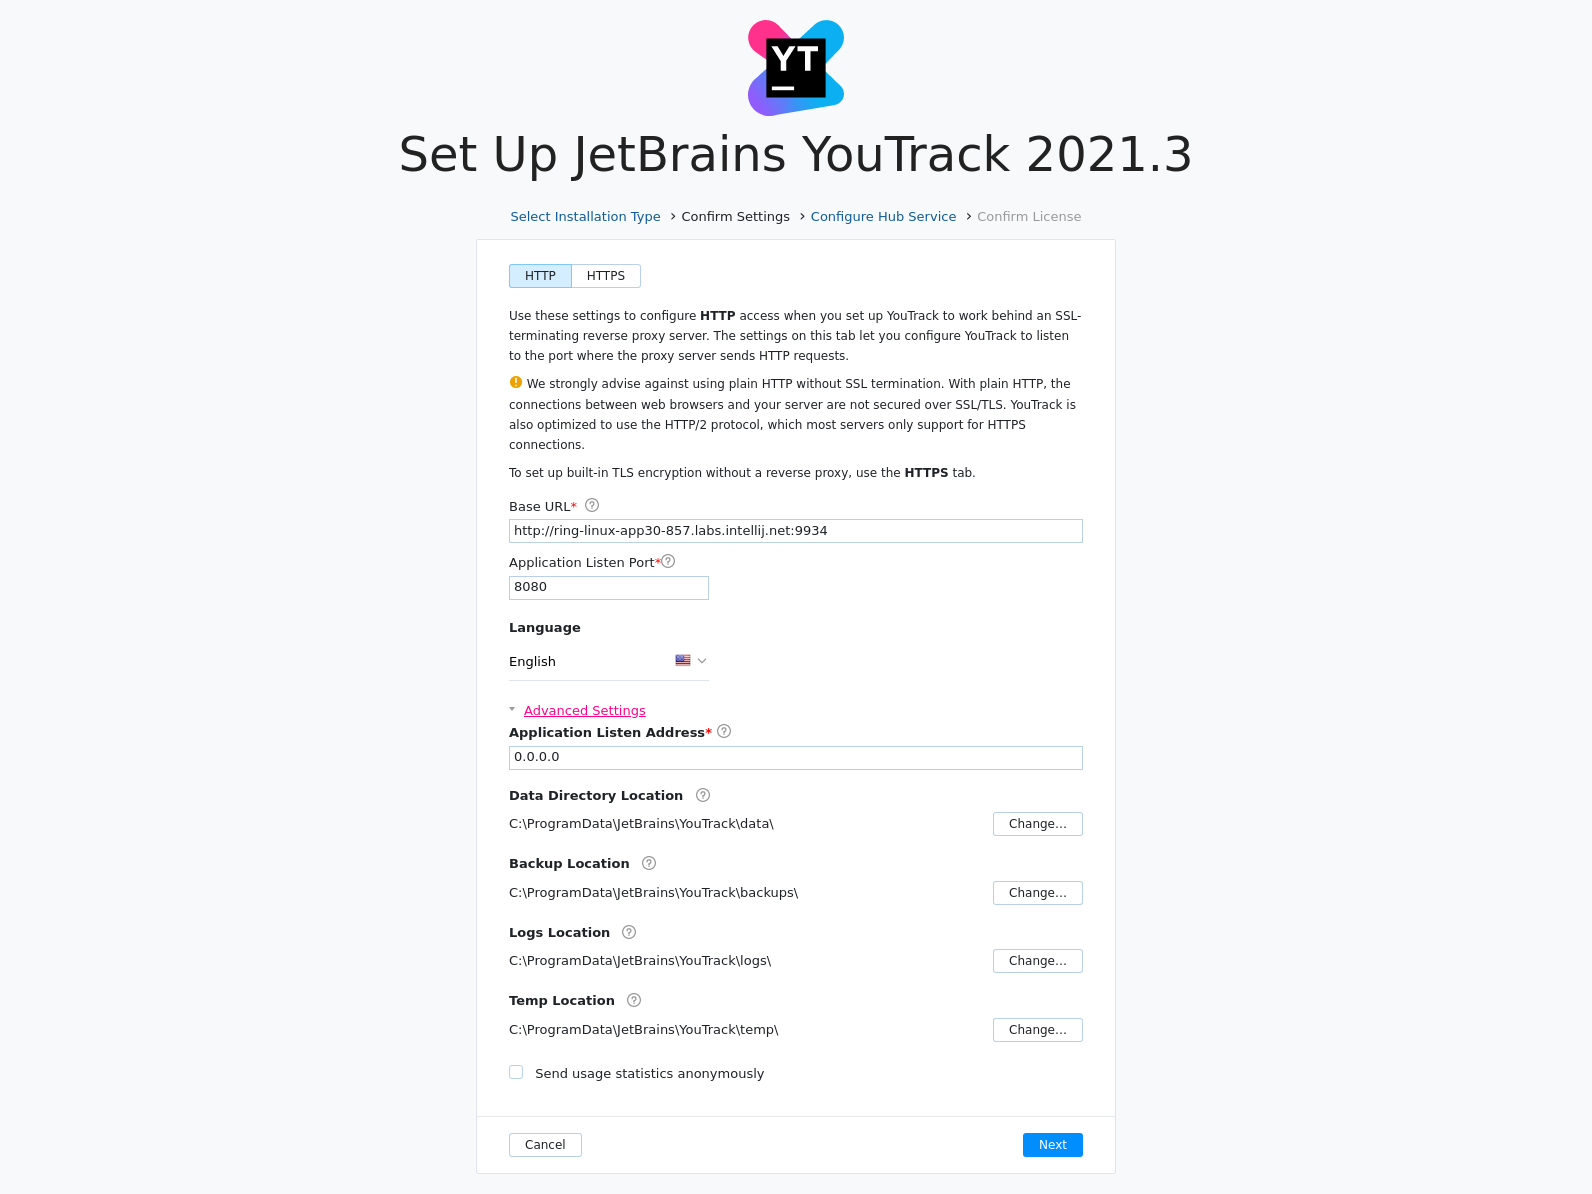 Install YouTrack advanced settings